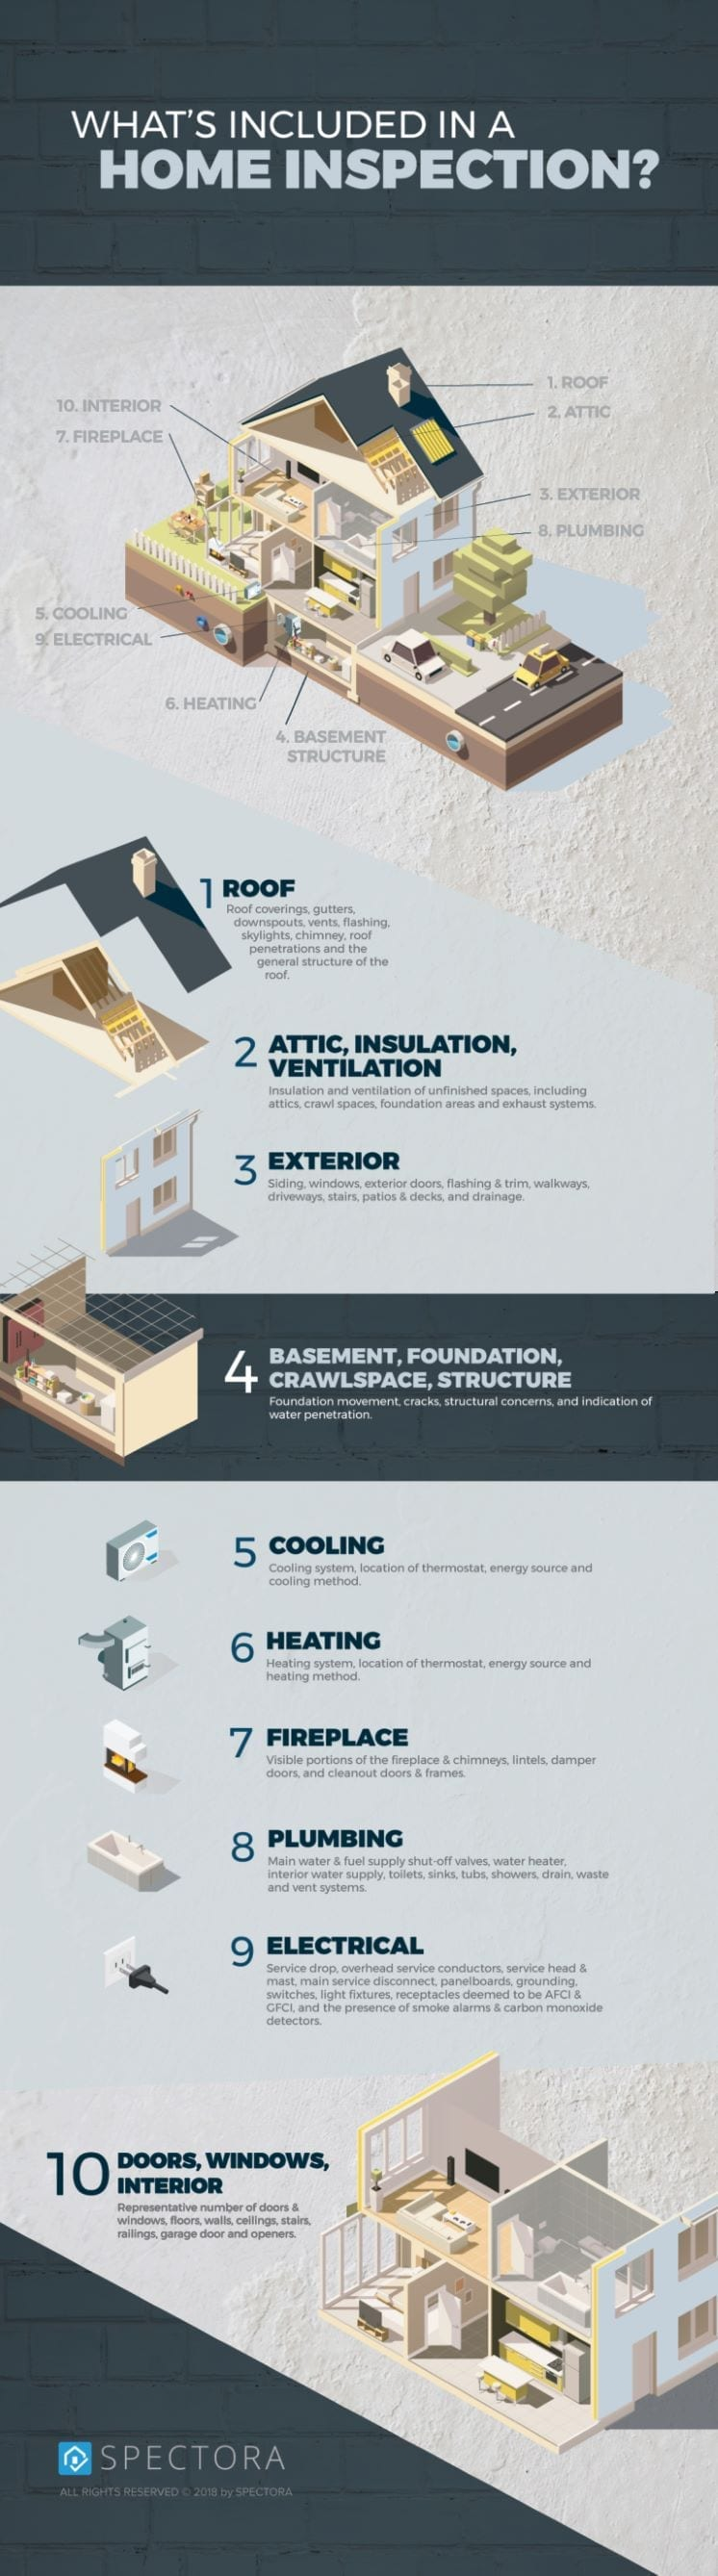 What is included in a home inspection?